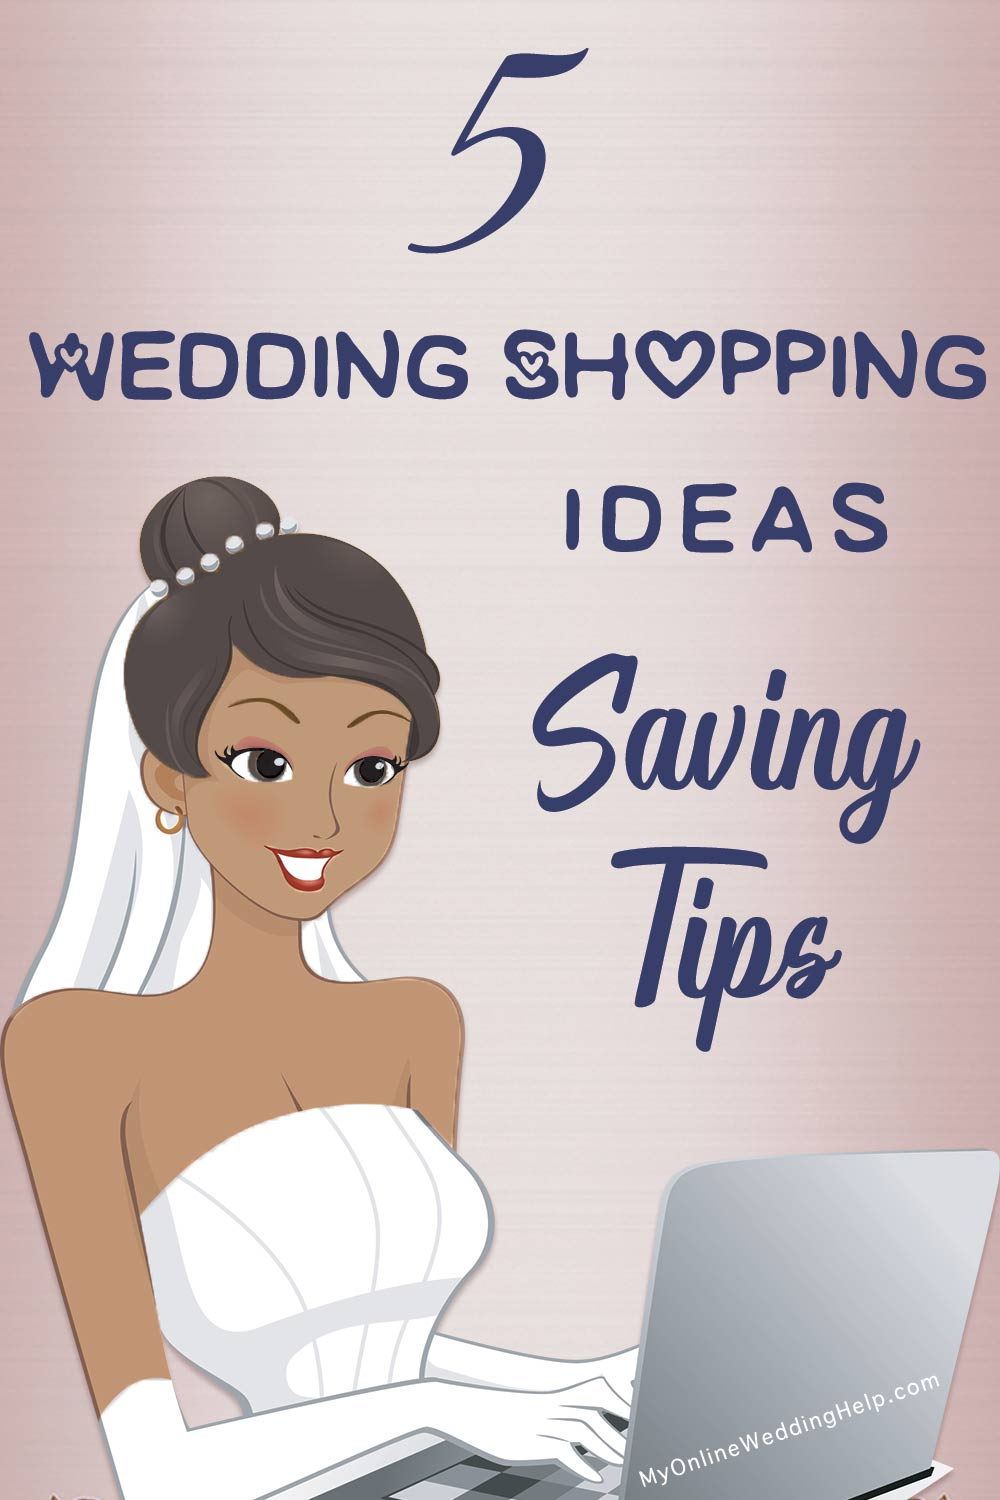 5 wedding shopping ideas, with saving tips. Follow these rules and you'll be surprised how much your wedding savings can add up. Learn more on the My Online Wedding Help blog. #MyOnlineWeddingHelp #WeddingSavings